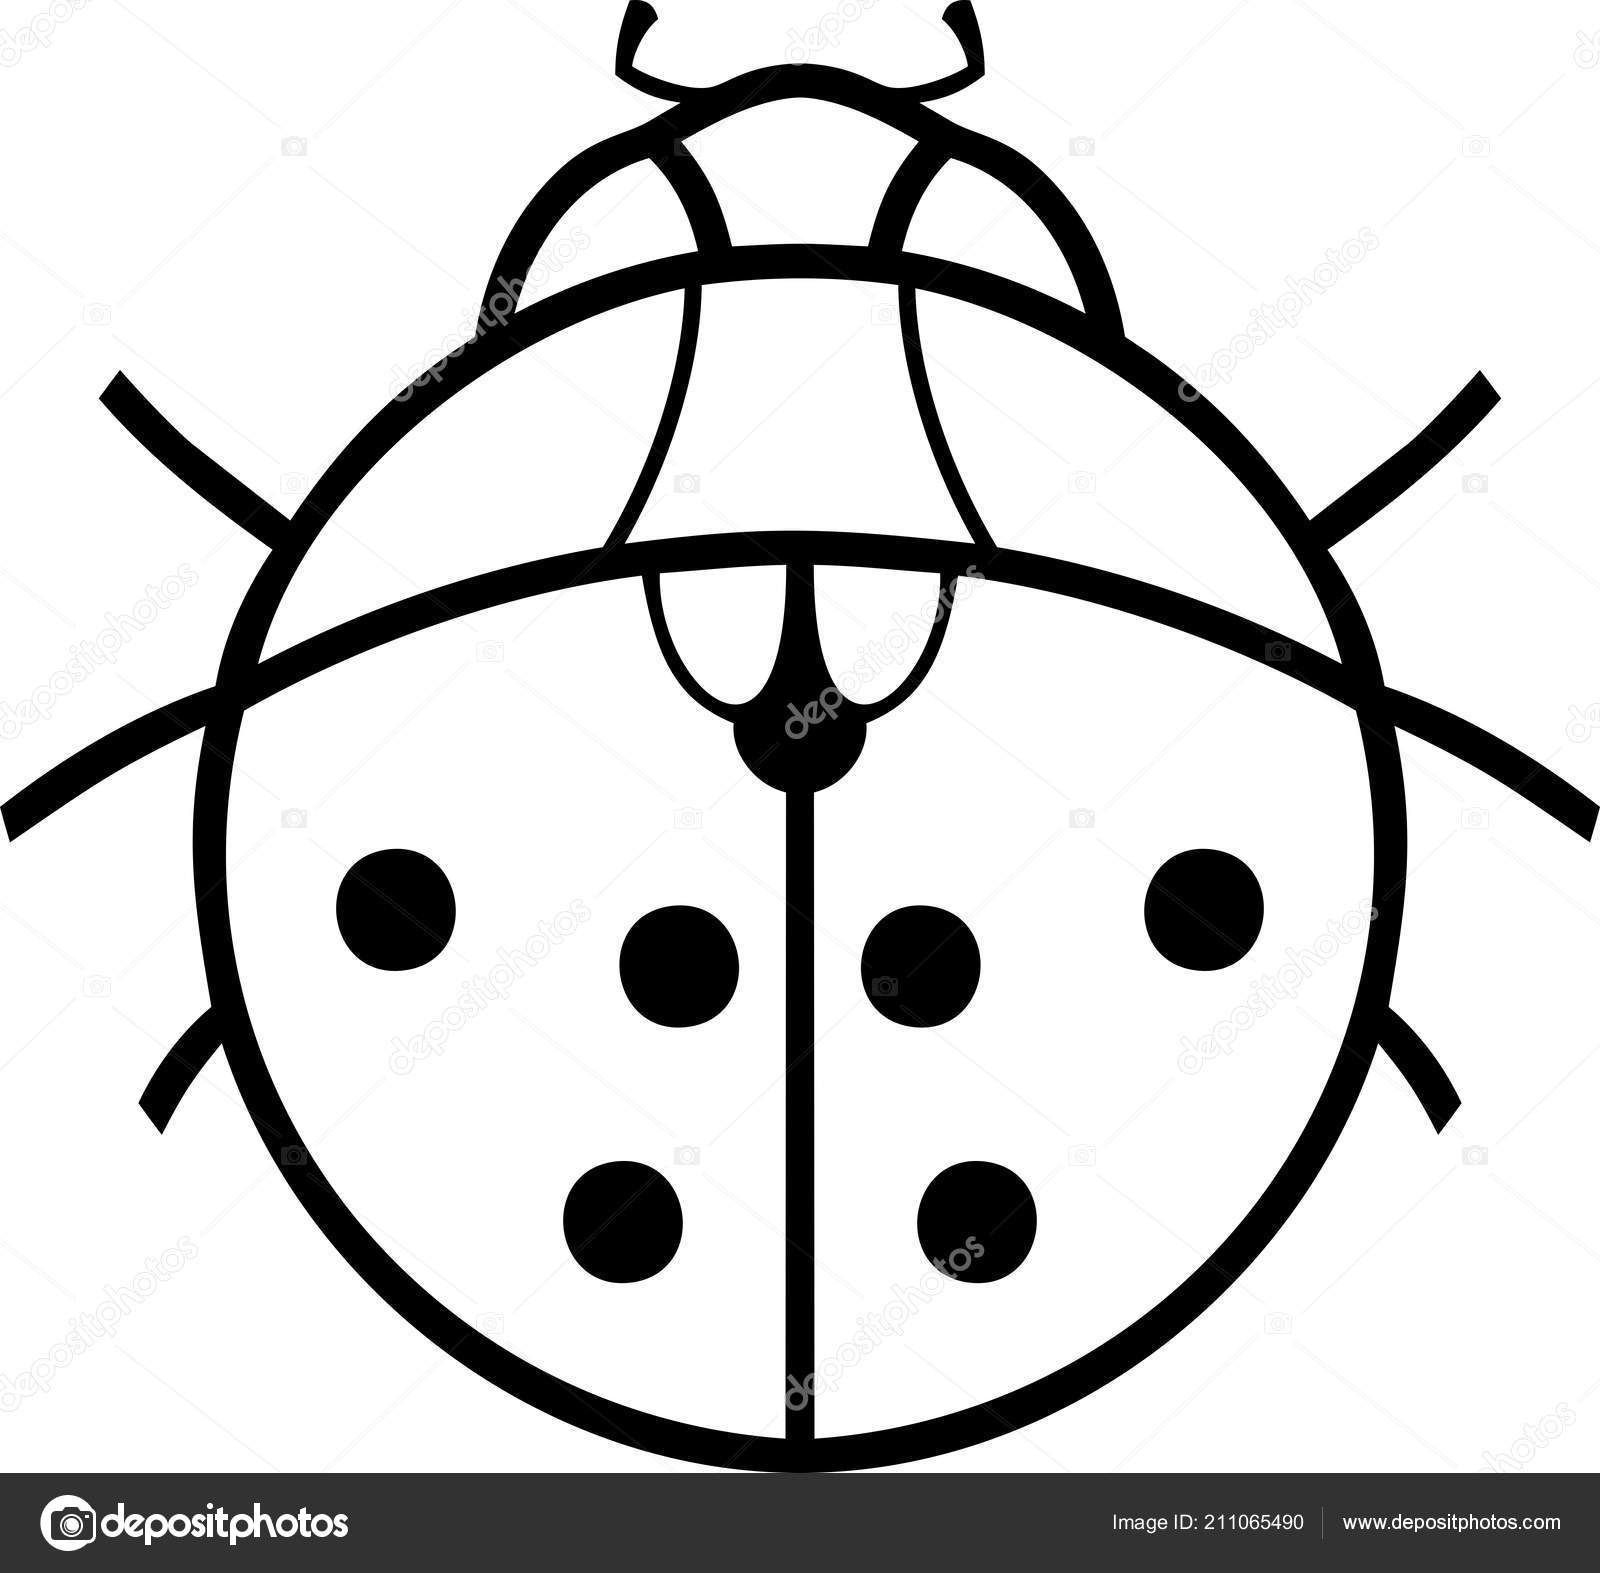 Coloriage Coccinelle Dessin Stylise Image Vectorielle Mariaflaya